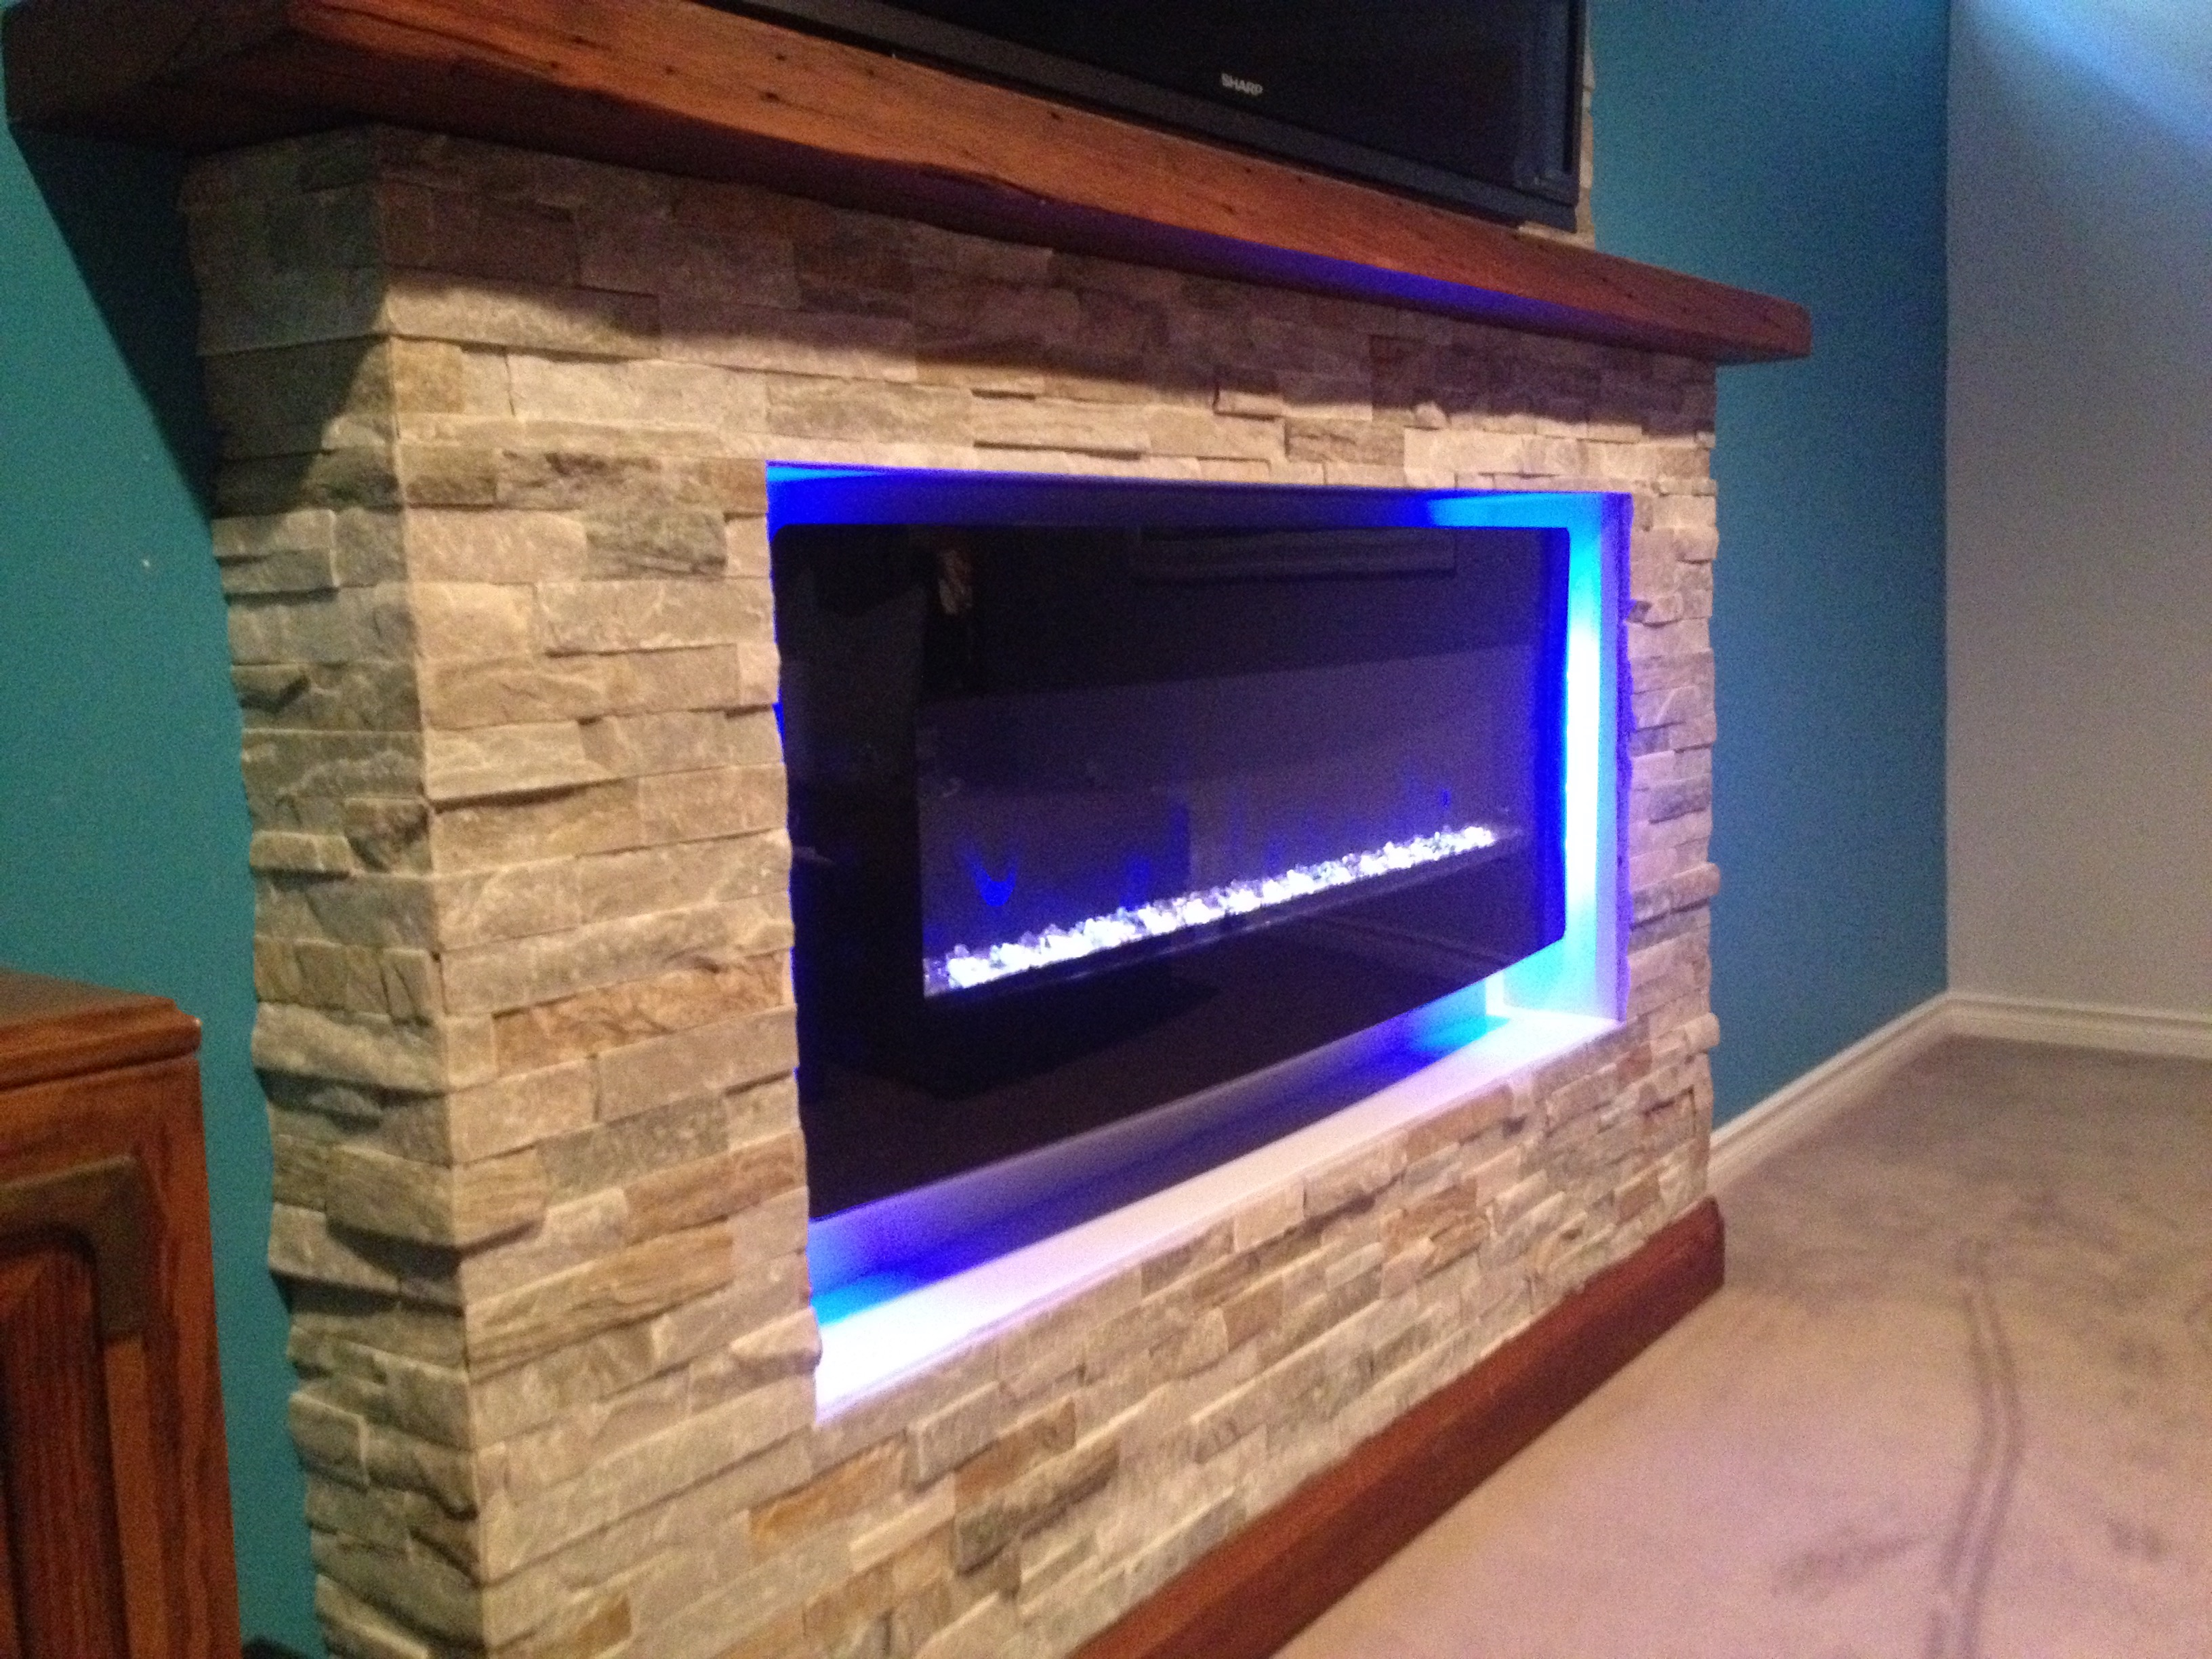 wood mantel with fireplace mantle electric btu